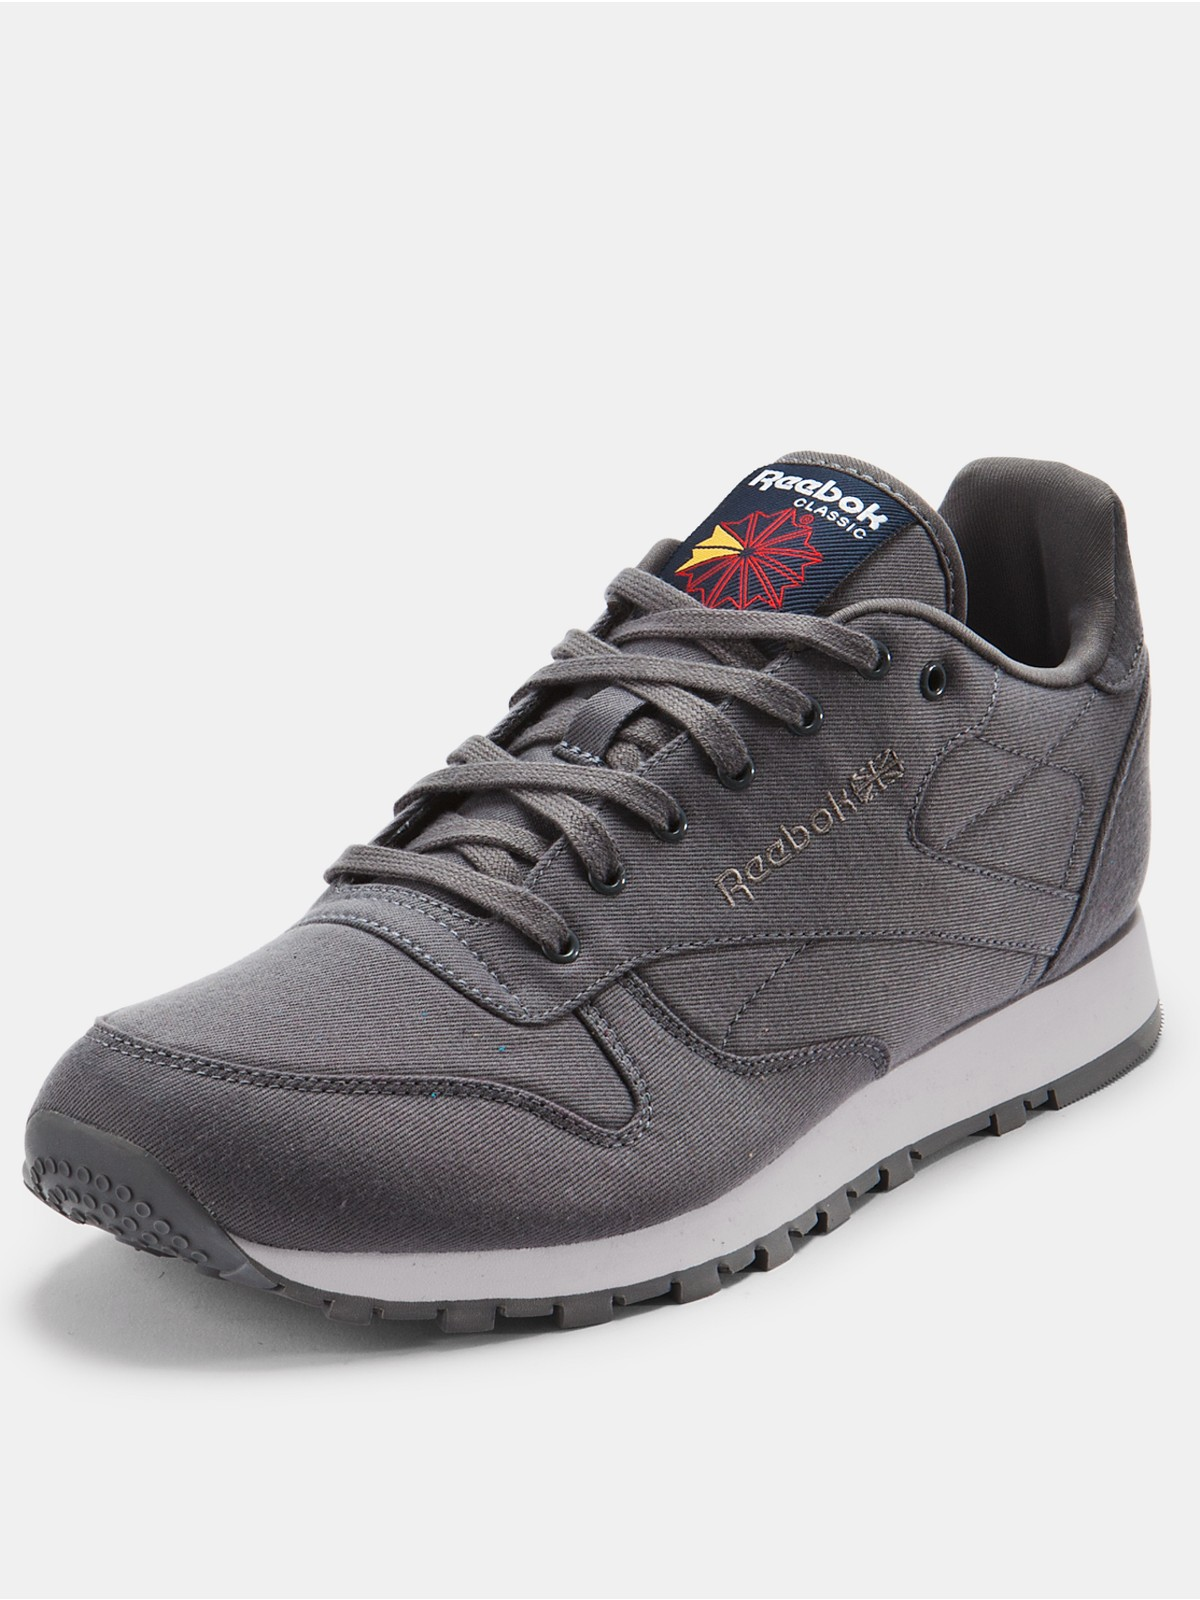 reebok classic textile mens trainers grey in gray for men